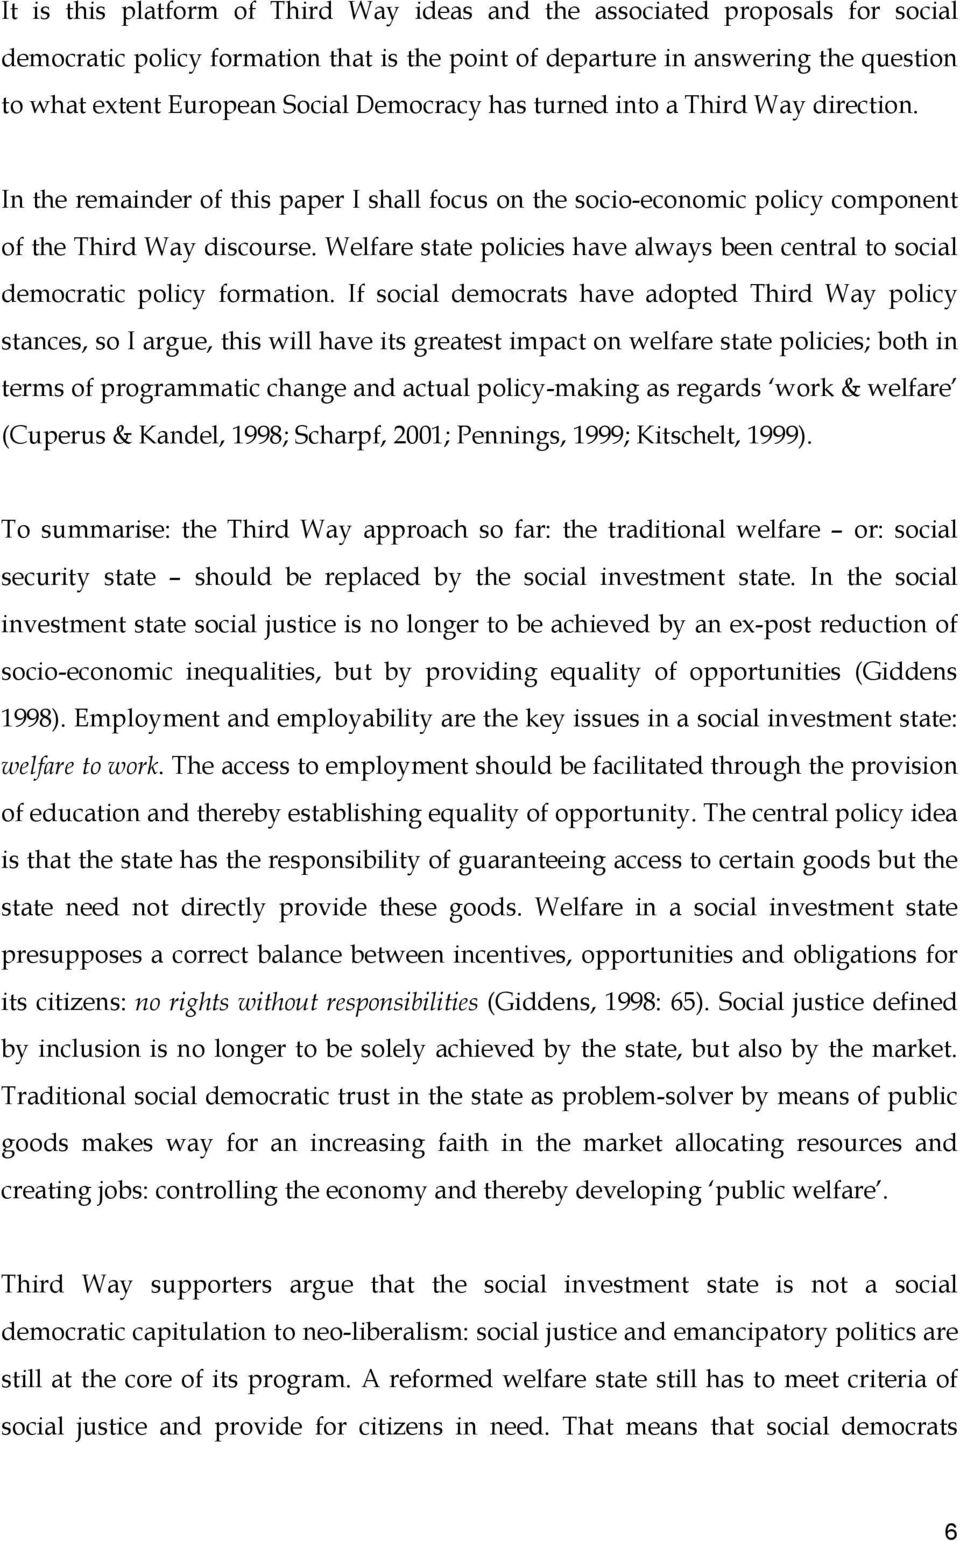 Welfare state policies have always been central to social democratic policy formation.